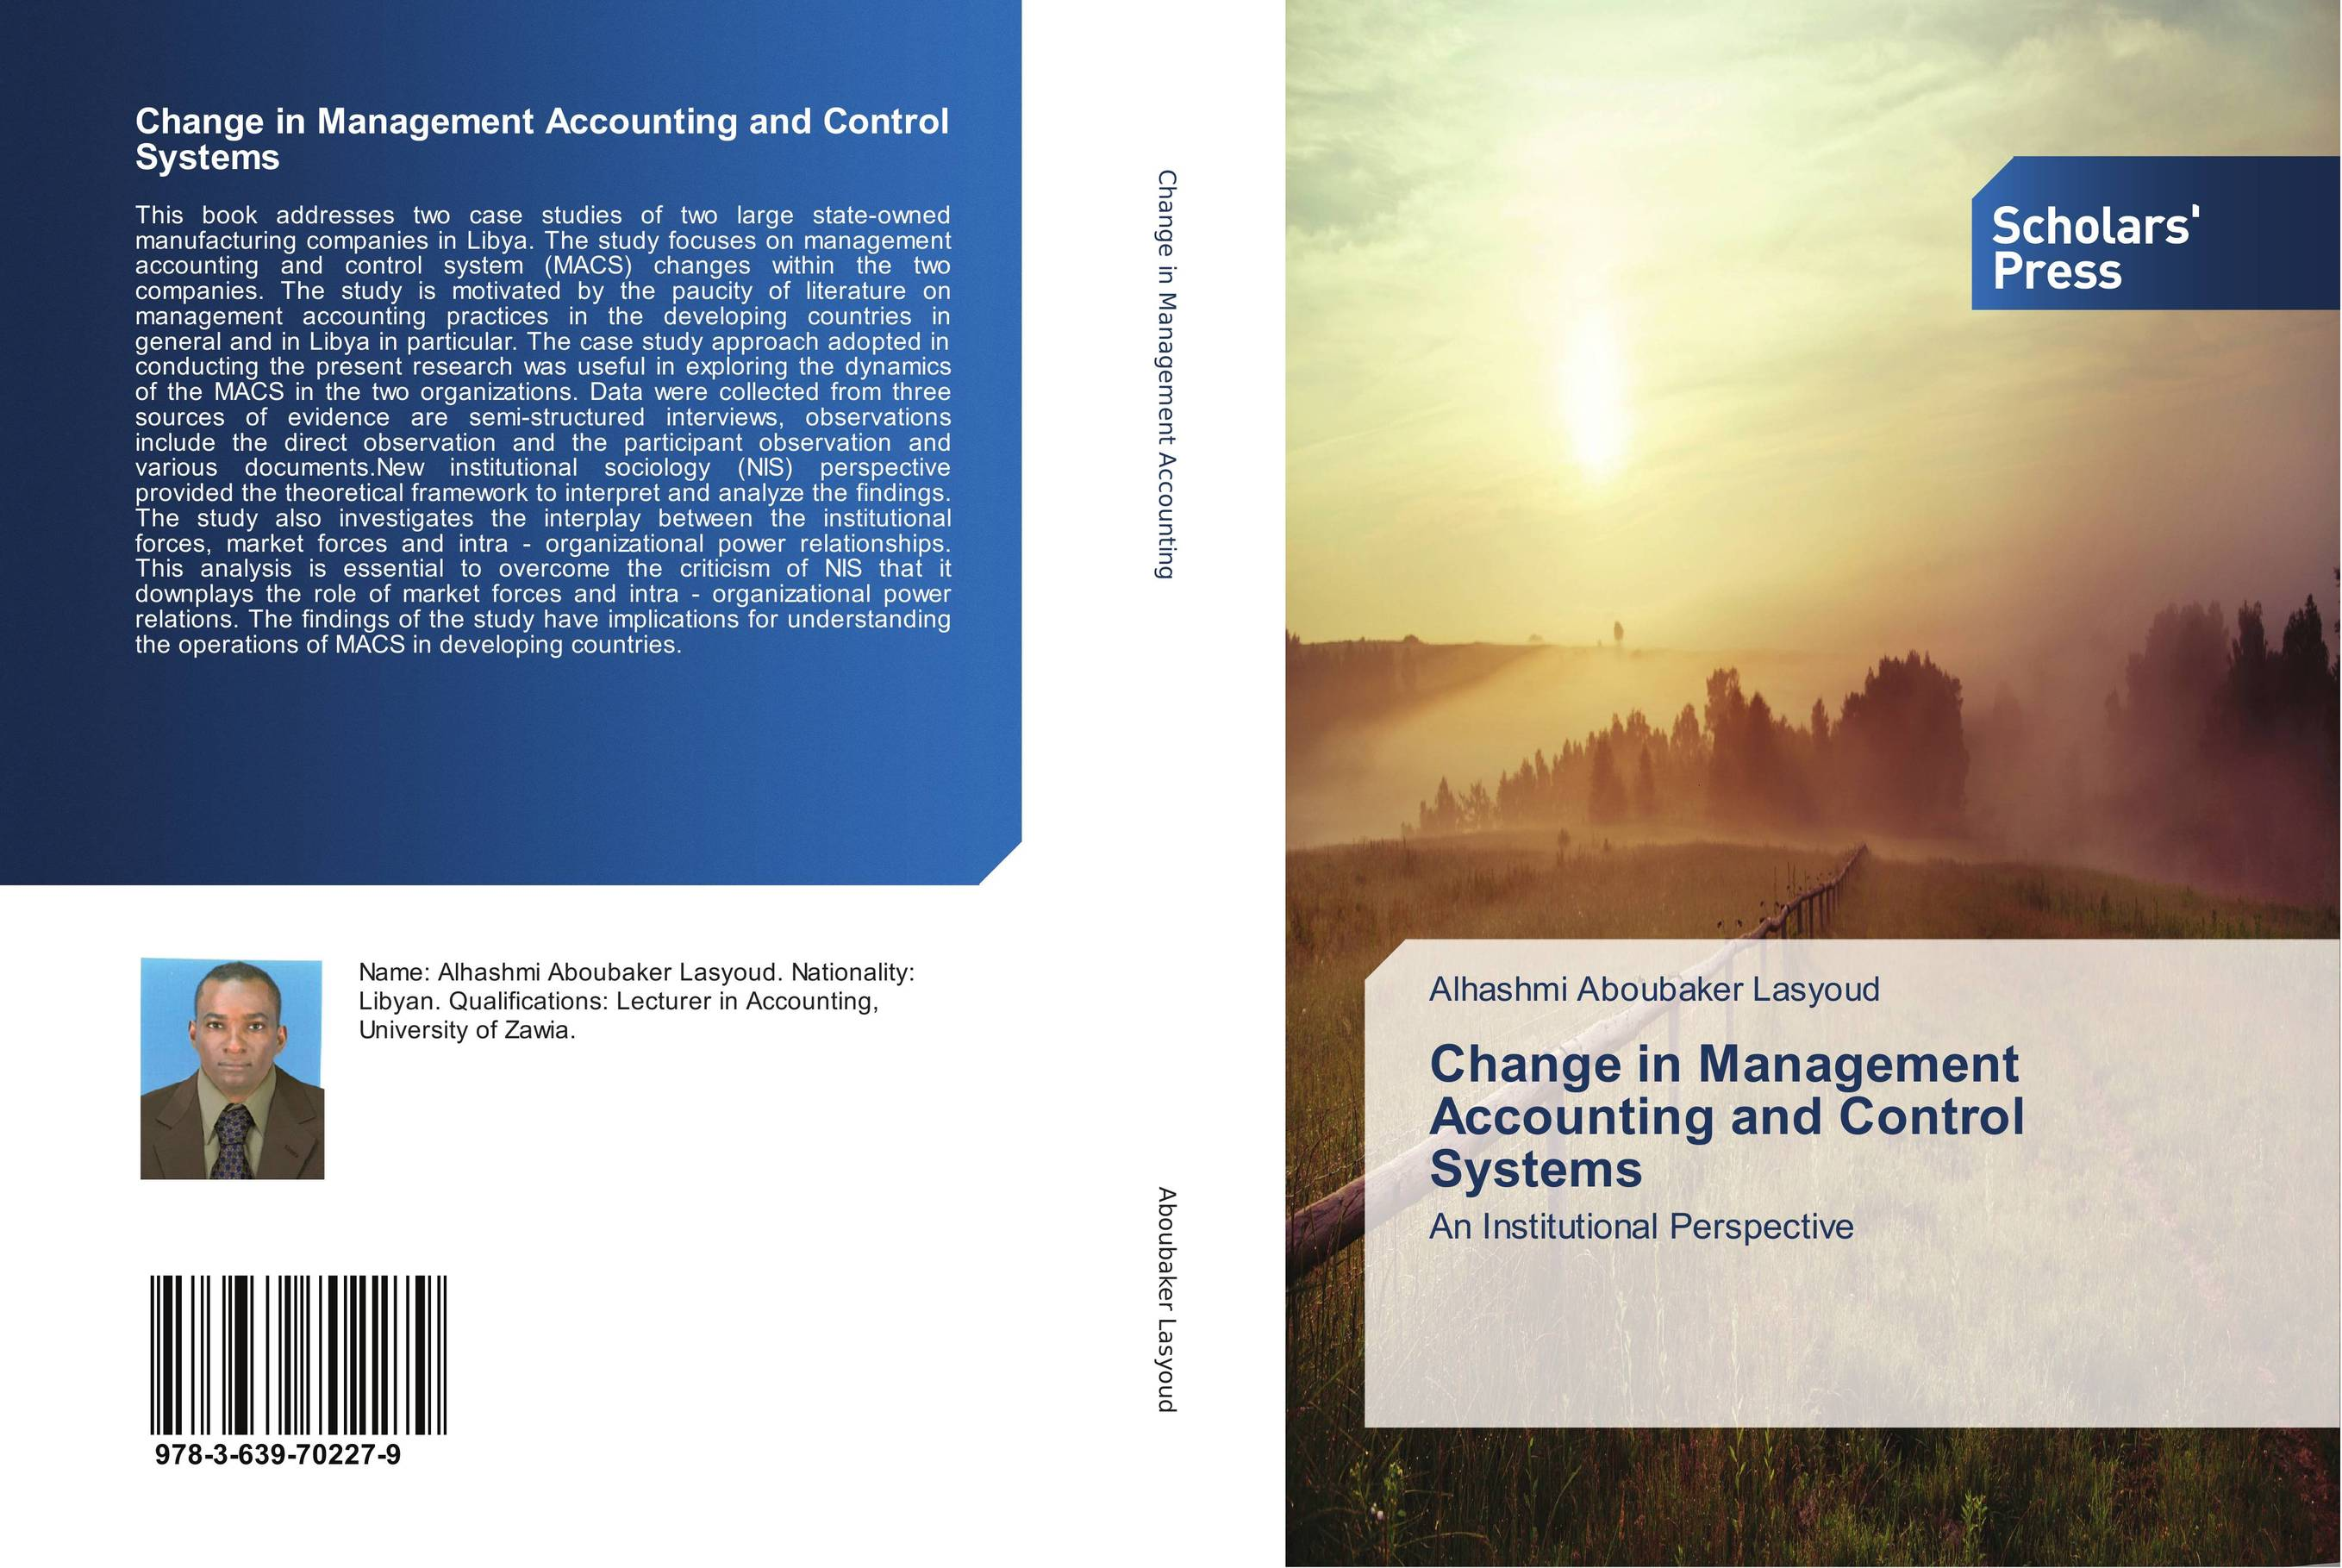 Change in Management Accounting and Control Systems